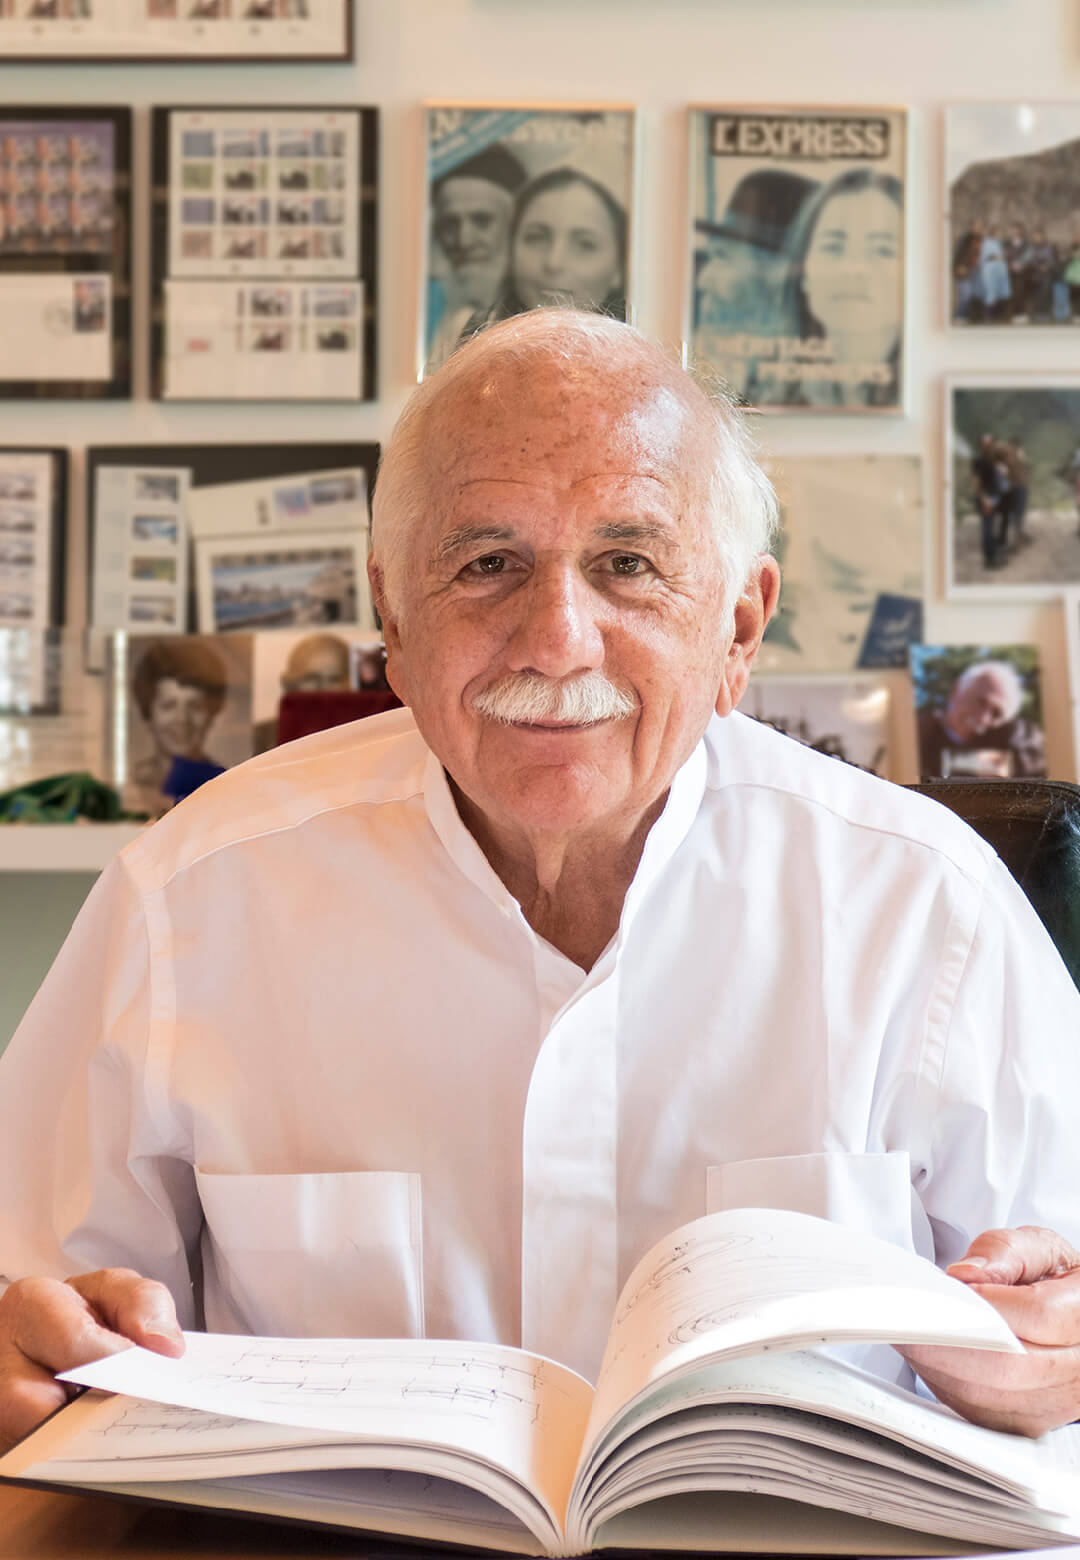 Portrait of Moshe Safdie | Vladimir Belogolovsky | STIRworld